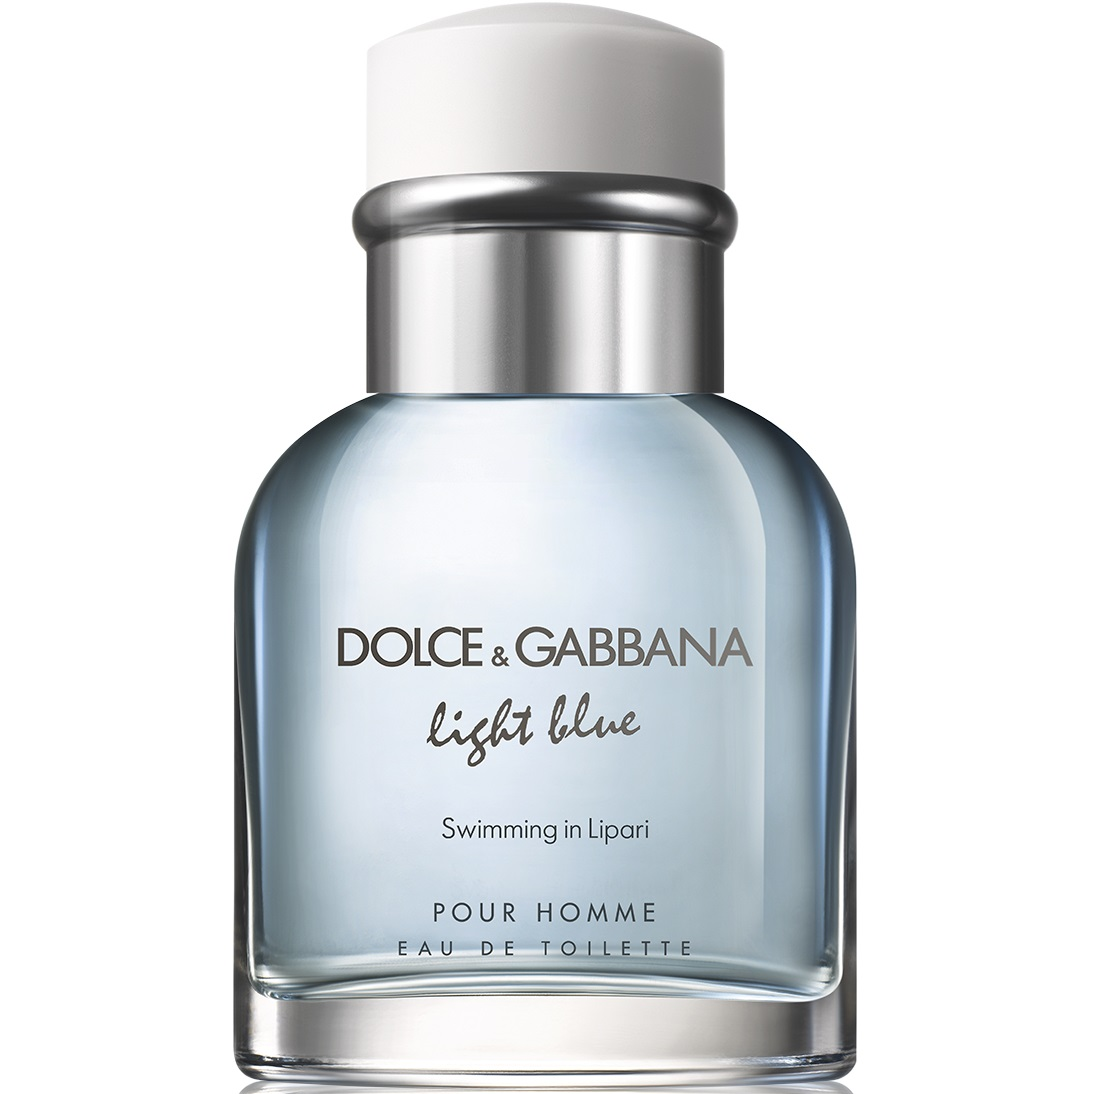 Dolce & Gabbana Light Blue Eau de Toilette<br/>